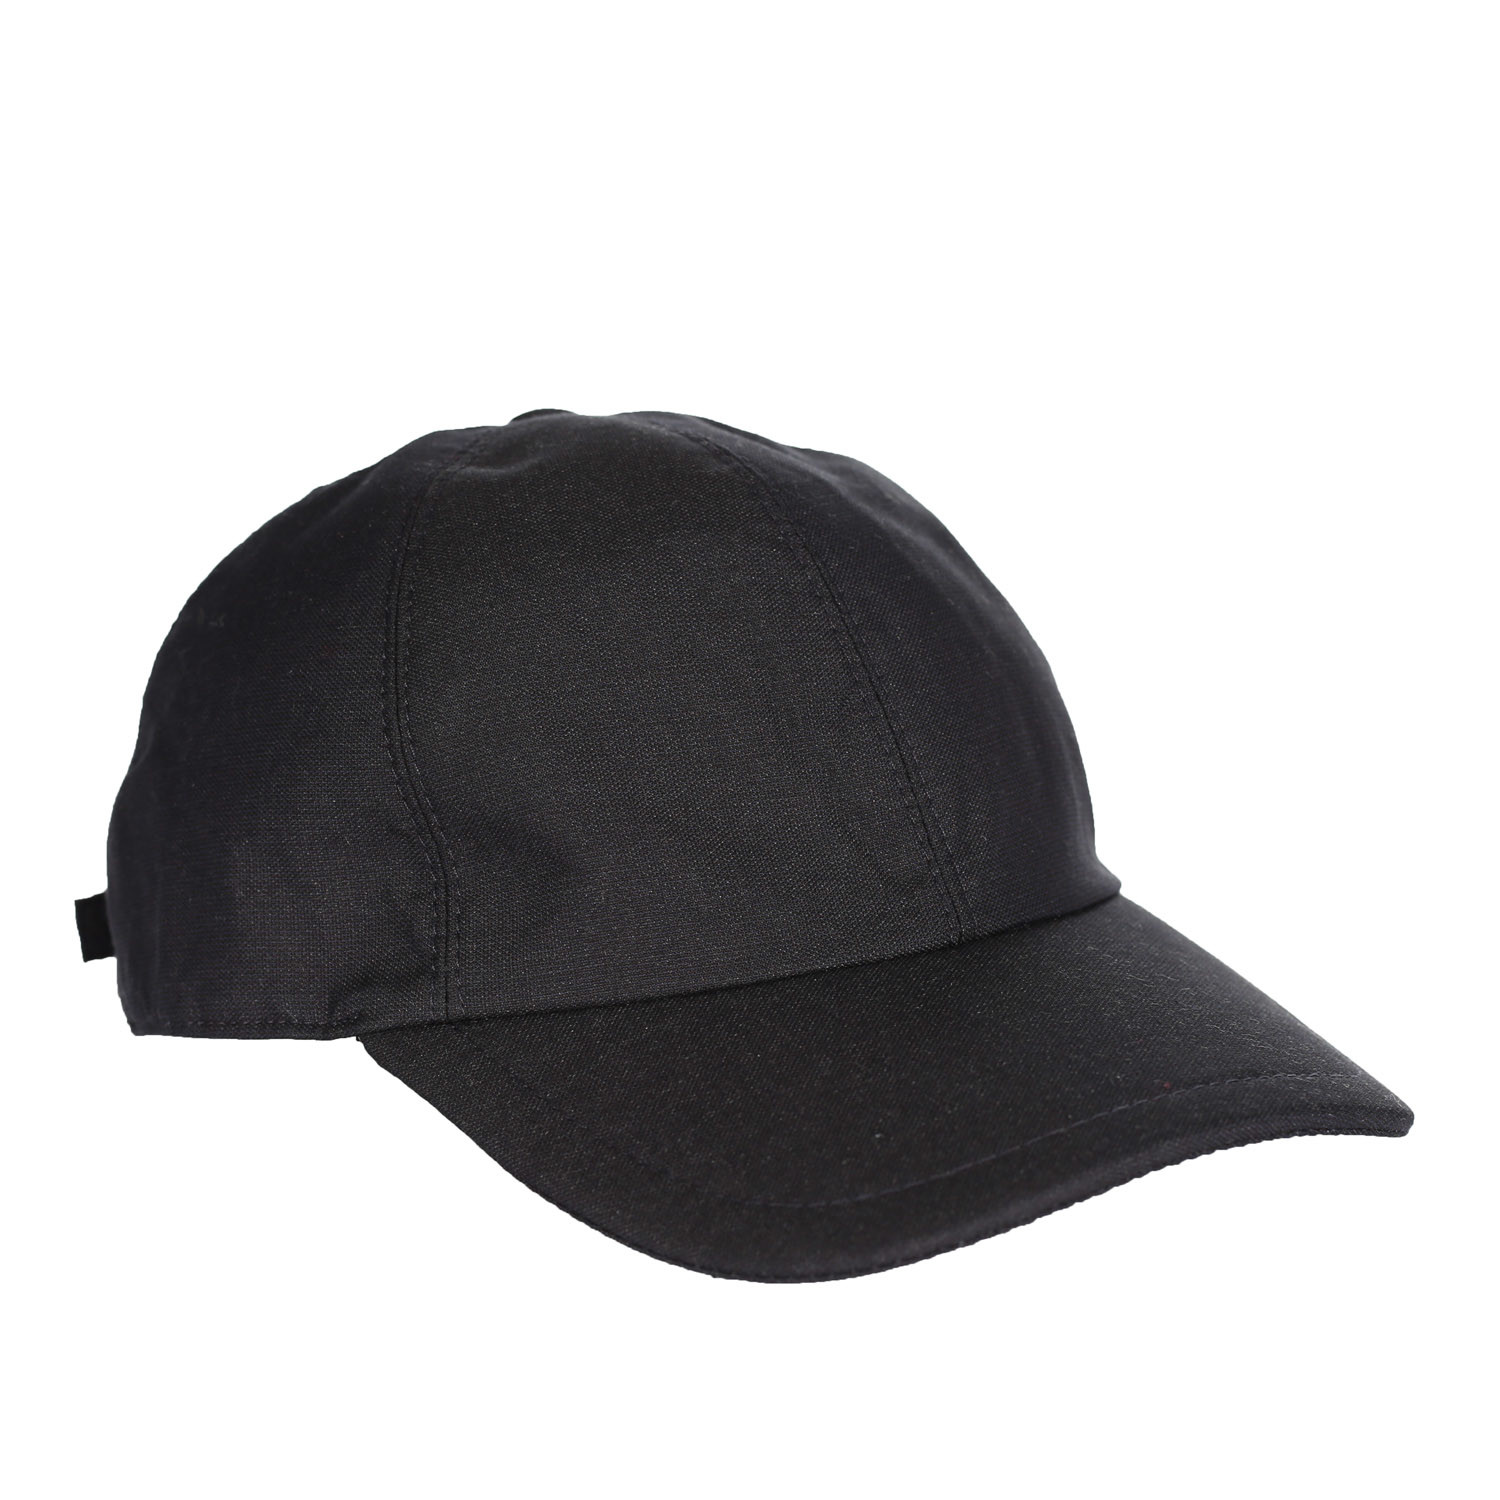 92e627ac341 C96b9729d9fb67936552e8b602d05bae medium · Silk Baseball Hat    Black